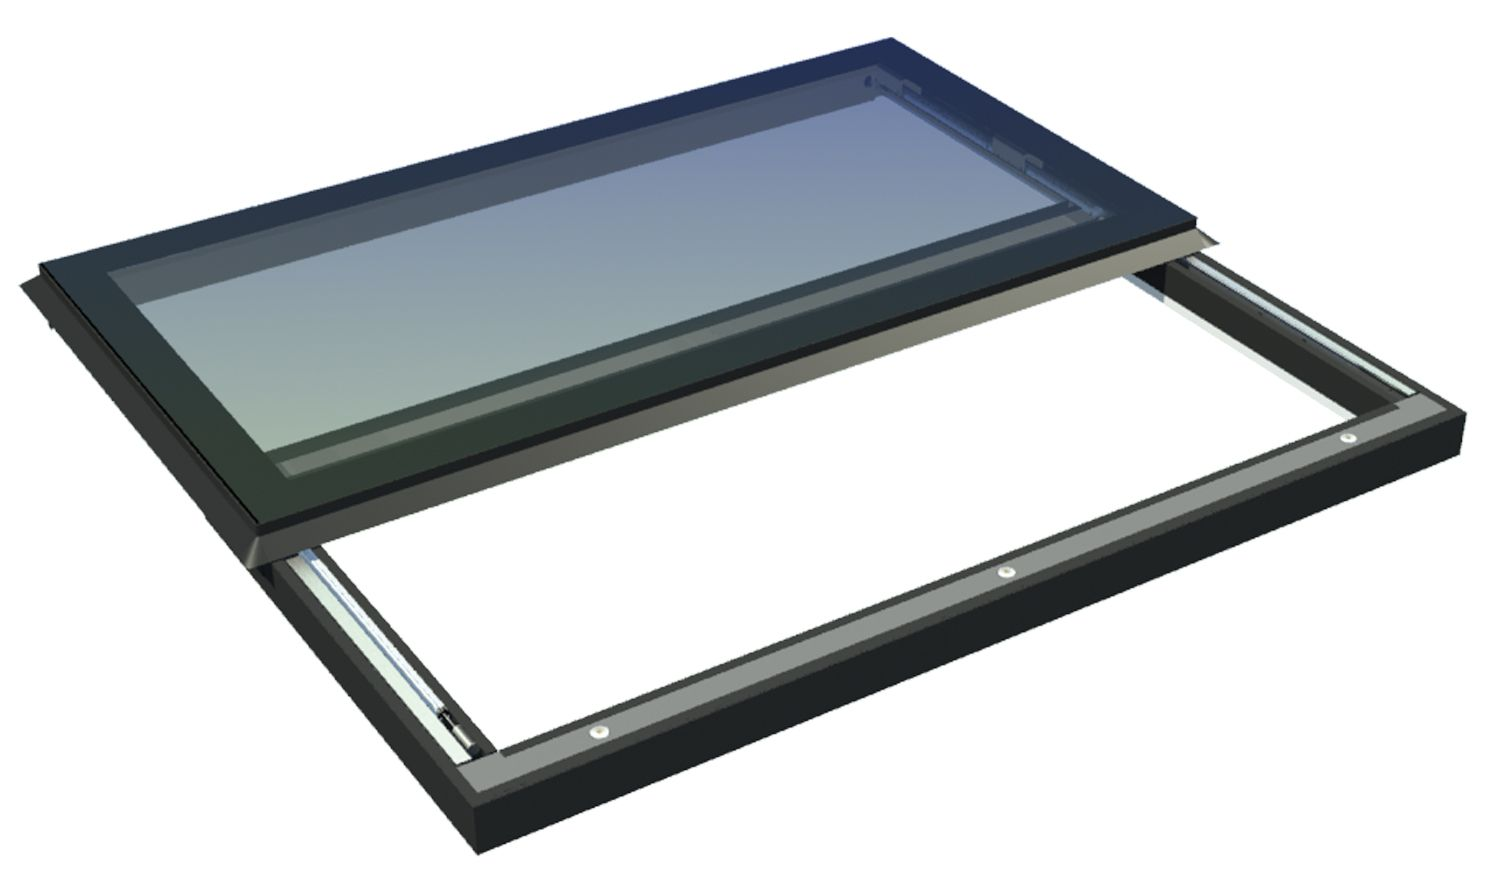 Home roof access glazed roof hatch glazed roof hatch - Choose From Our Range Of Opening Skylights Including Electric Hinged Rooflights Sliding Skylight Or Our Pyramid Opening Roof Lantern